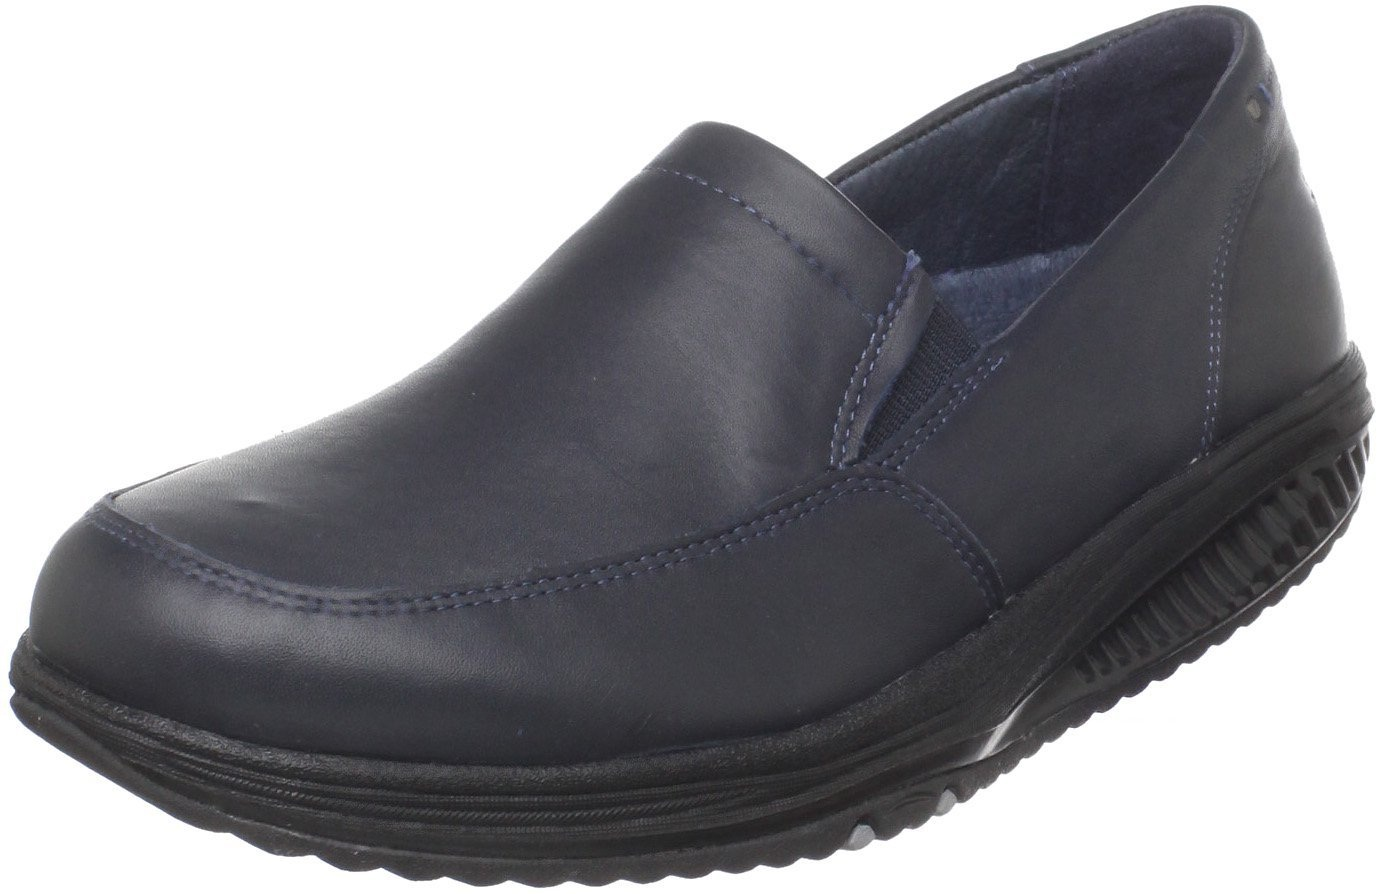 Skechers Women's 'Well Being' Toning Loafer at Sears.com